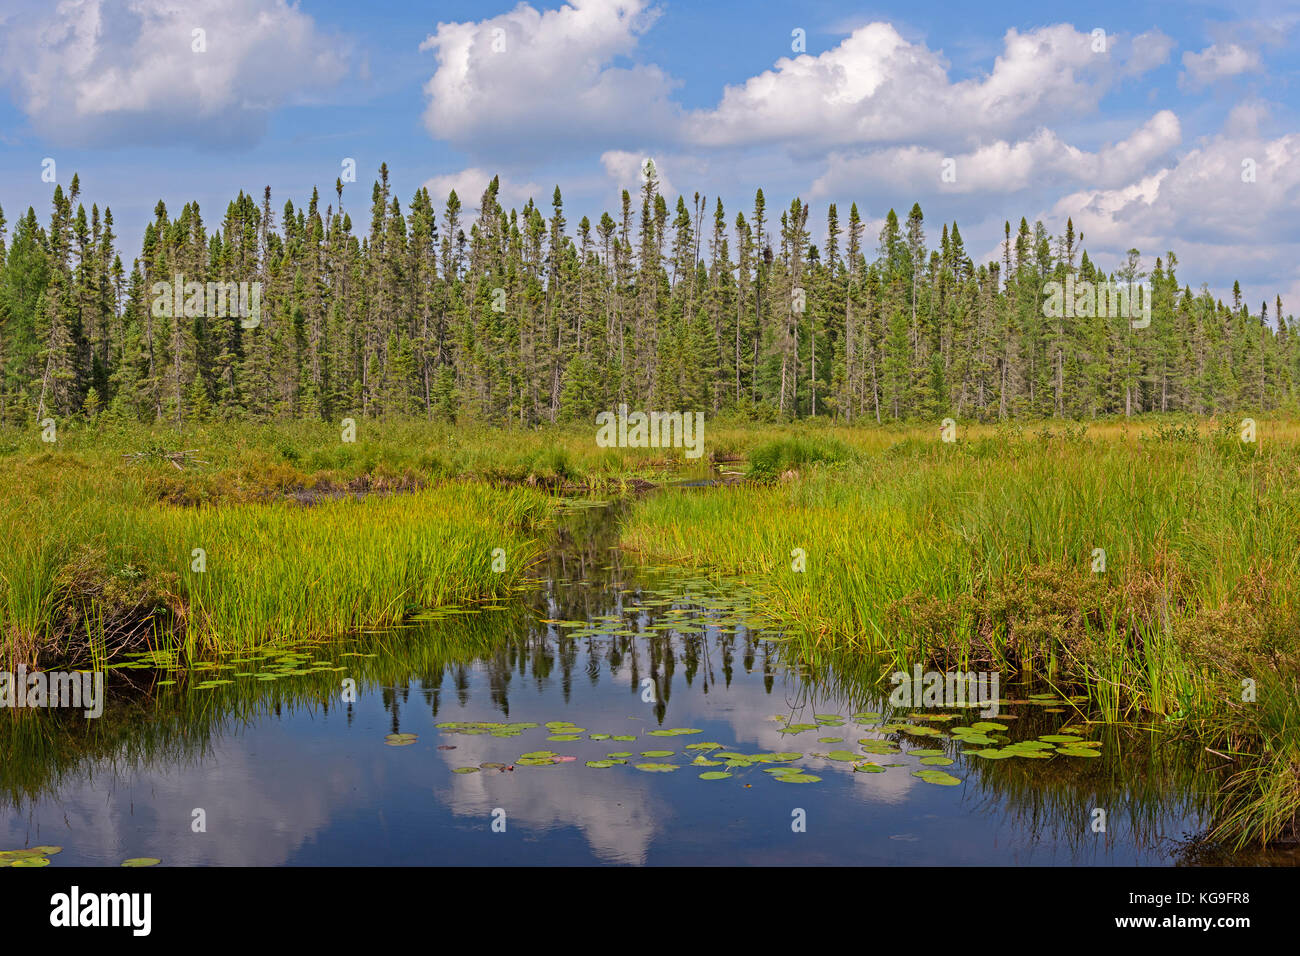 Canoe Path Through the Wetlands on Cross Bay Lake in the Boundary Waters Canoe Area in Minnesota - Stock Image